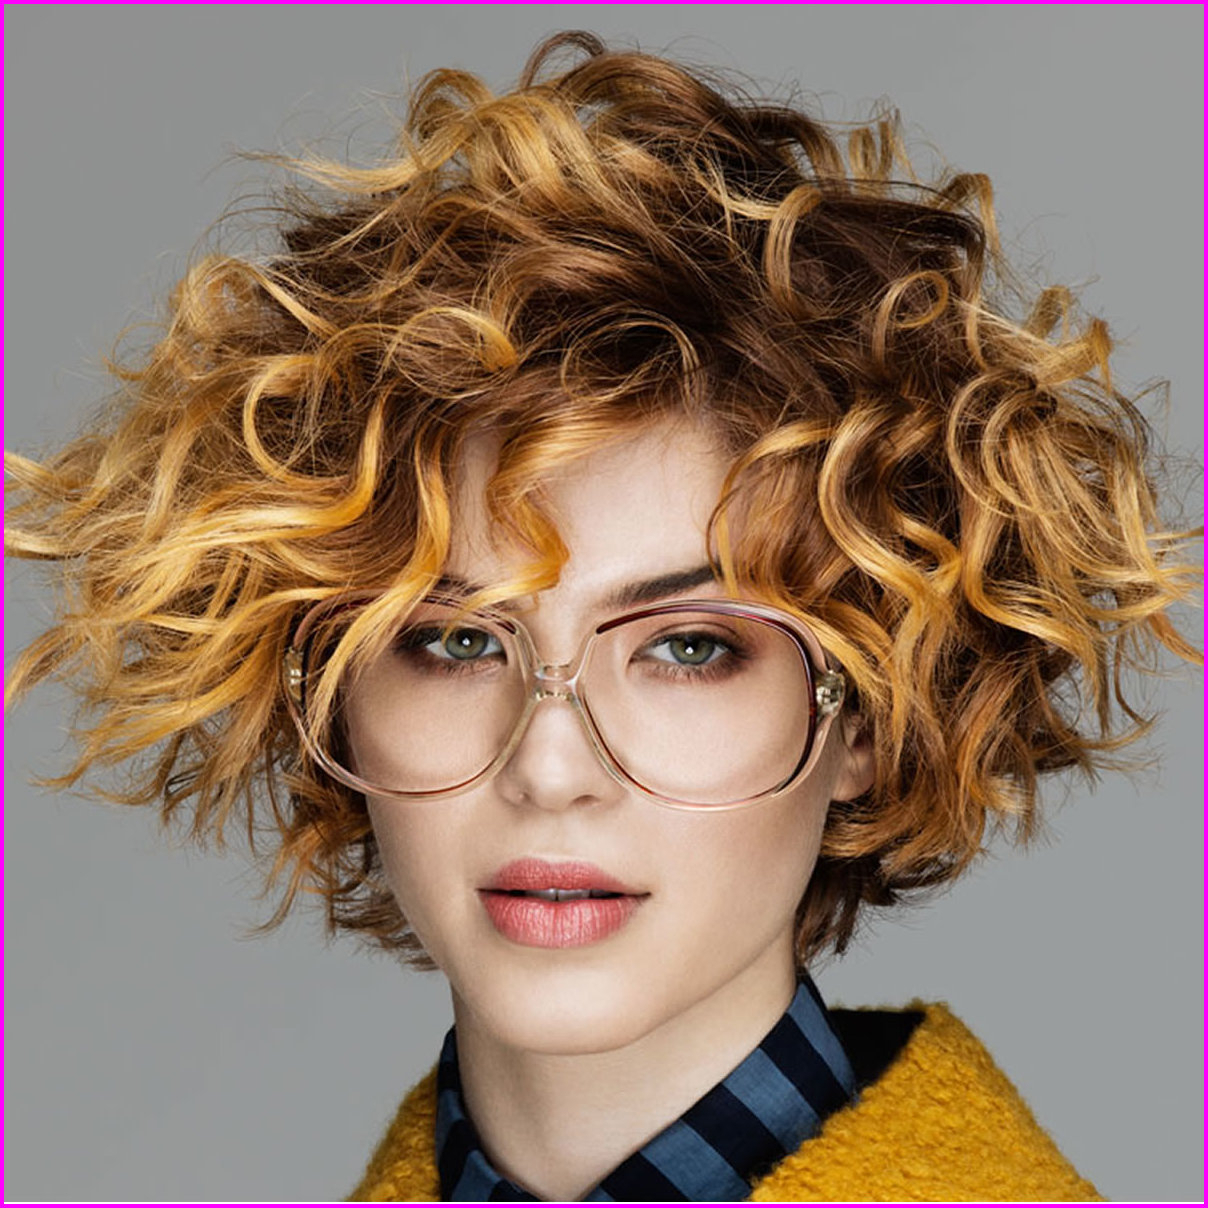 Best Short Haircuts For Curly Hair & Round Face 2019 – Best Short With Regard To Short Haircuts For Round Faces And Curly Hair (View 11 of 25)